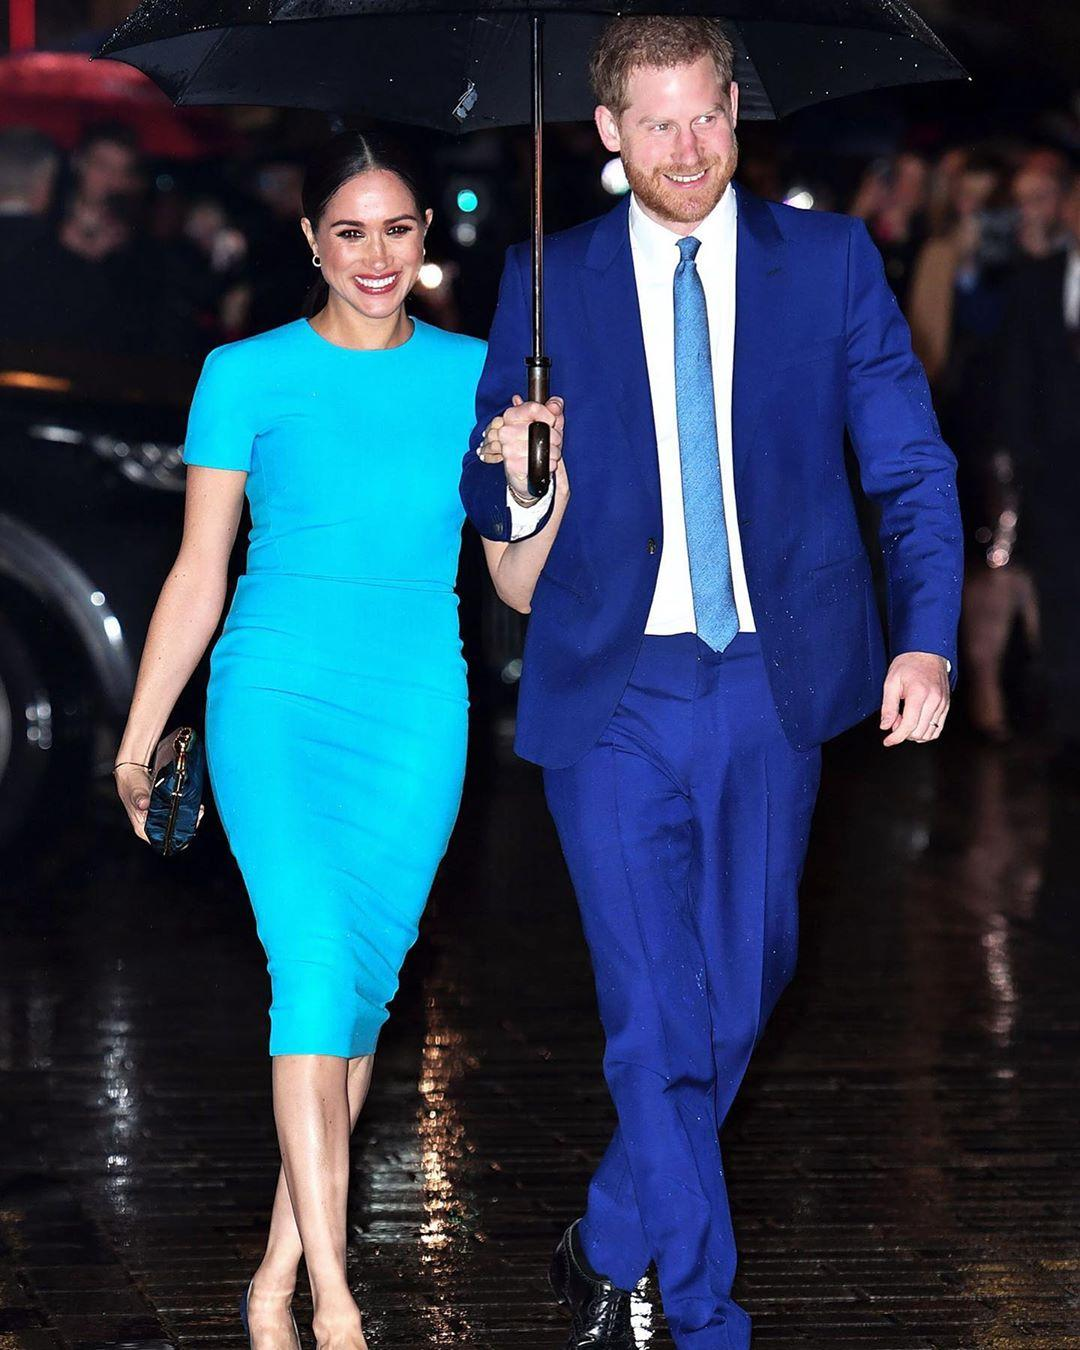 Finding Freedom: Meghan Markle and Prince Harry